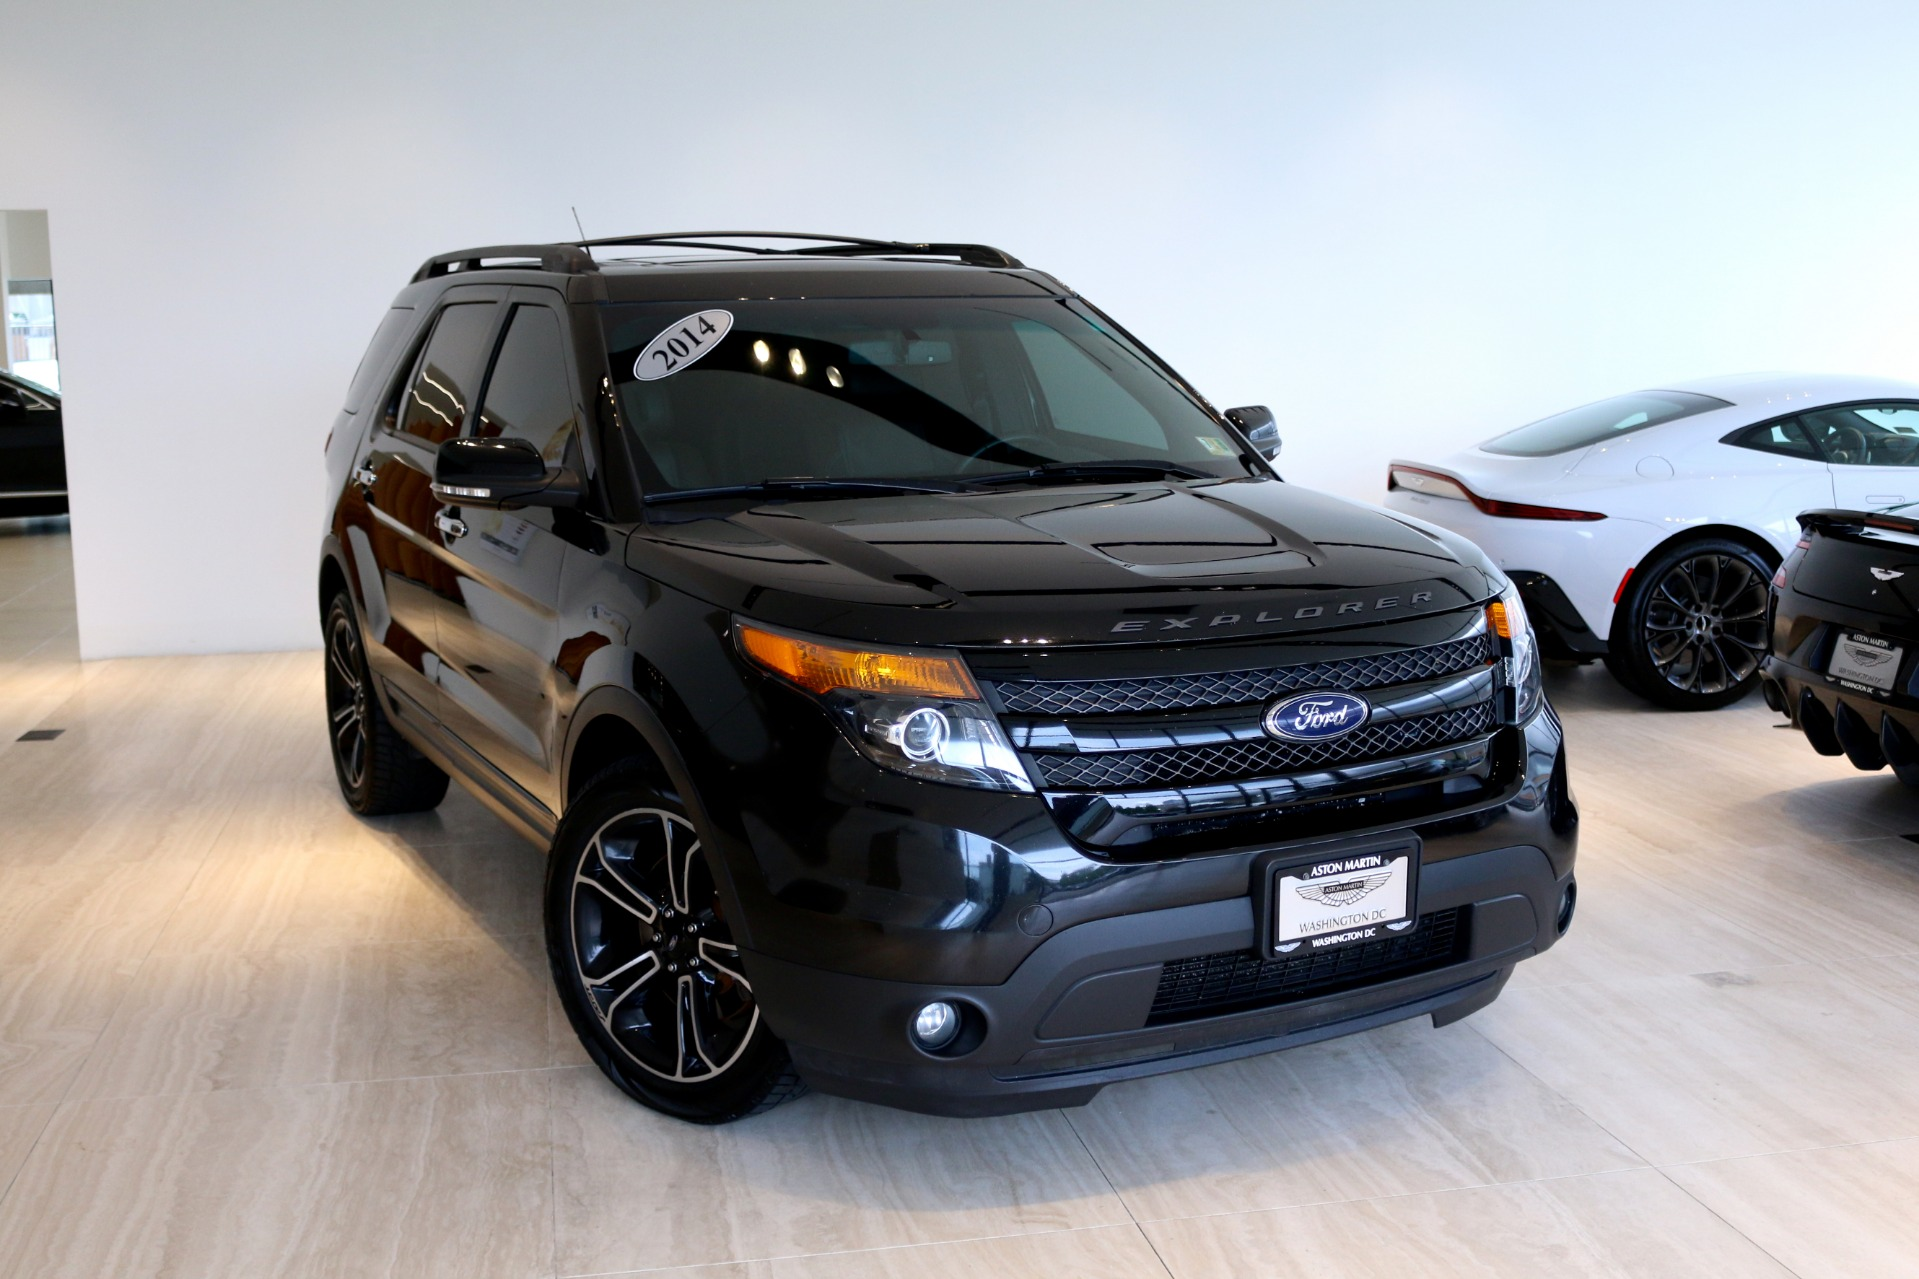 2014 Ford Explorer Sport For Sale >> 2014 Ford Explorer Sport Stock # PR93829A for sale near